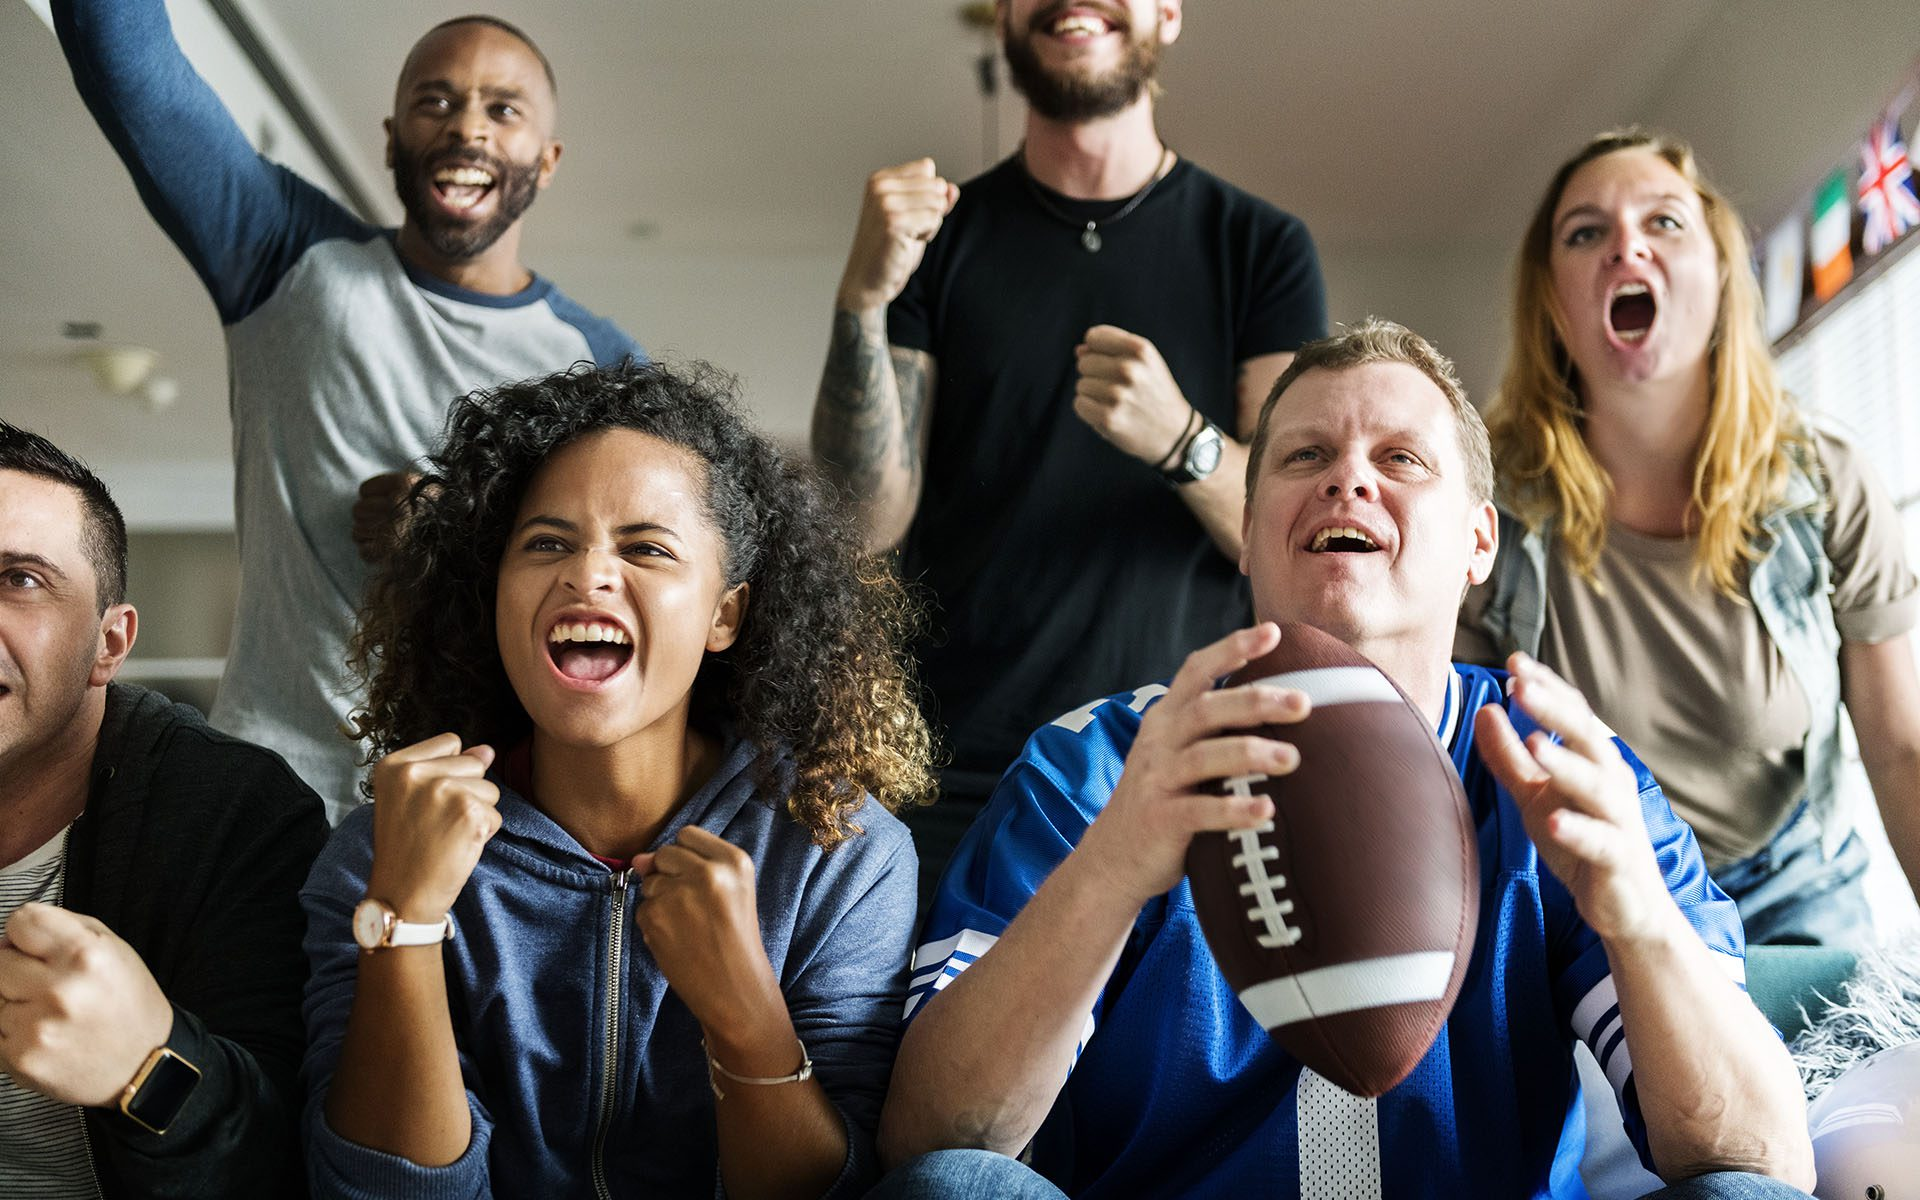 Signed Penn State Football Giveaway - Football Fans Yelling and Smiling at the TV While the Game is on While They Sit on the Couch